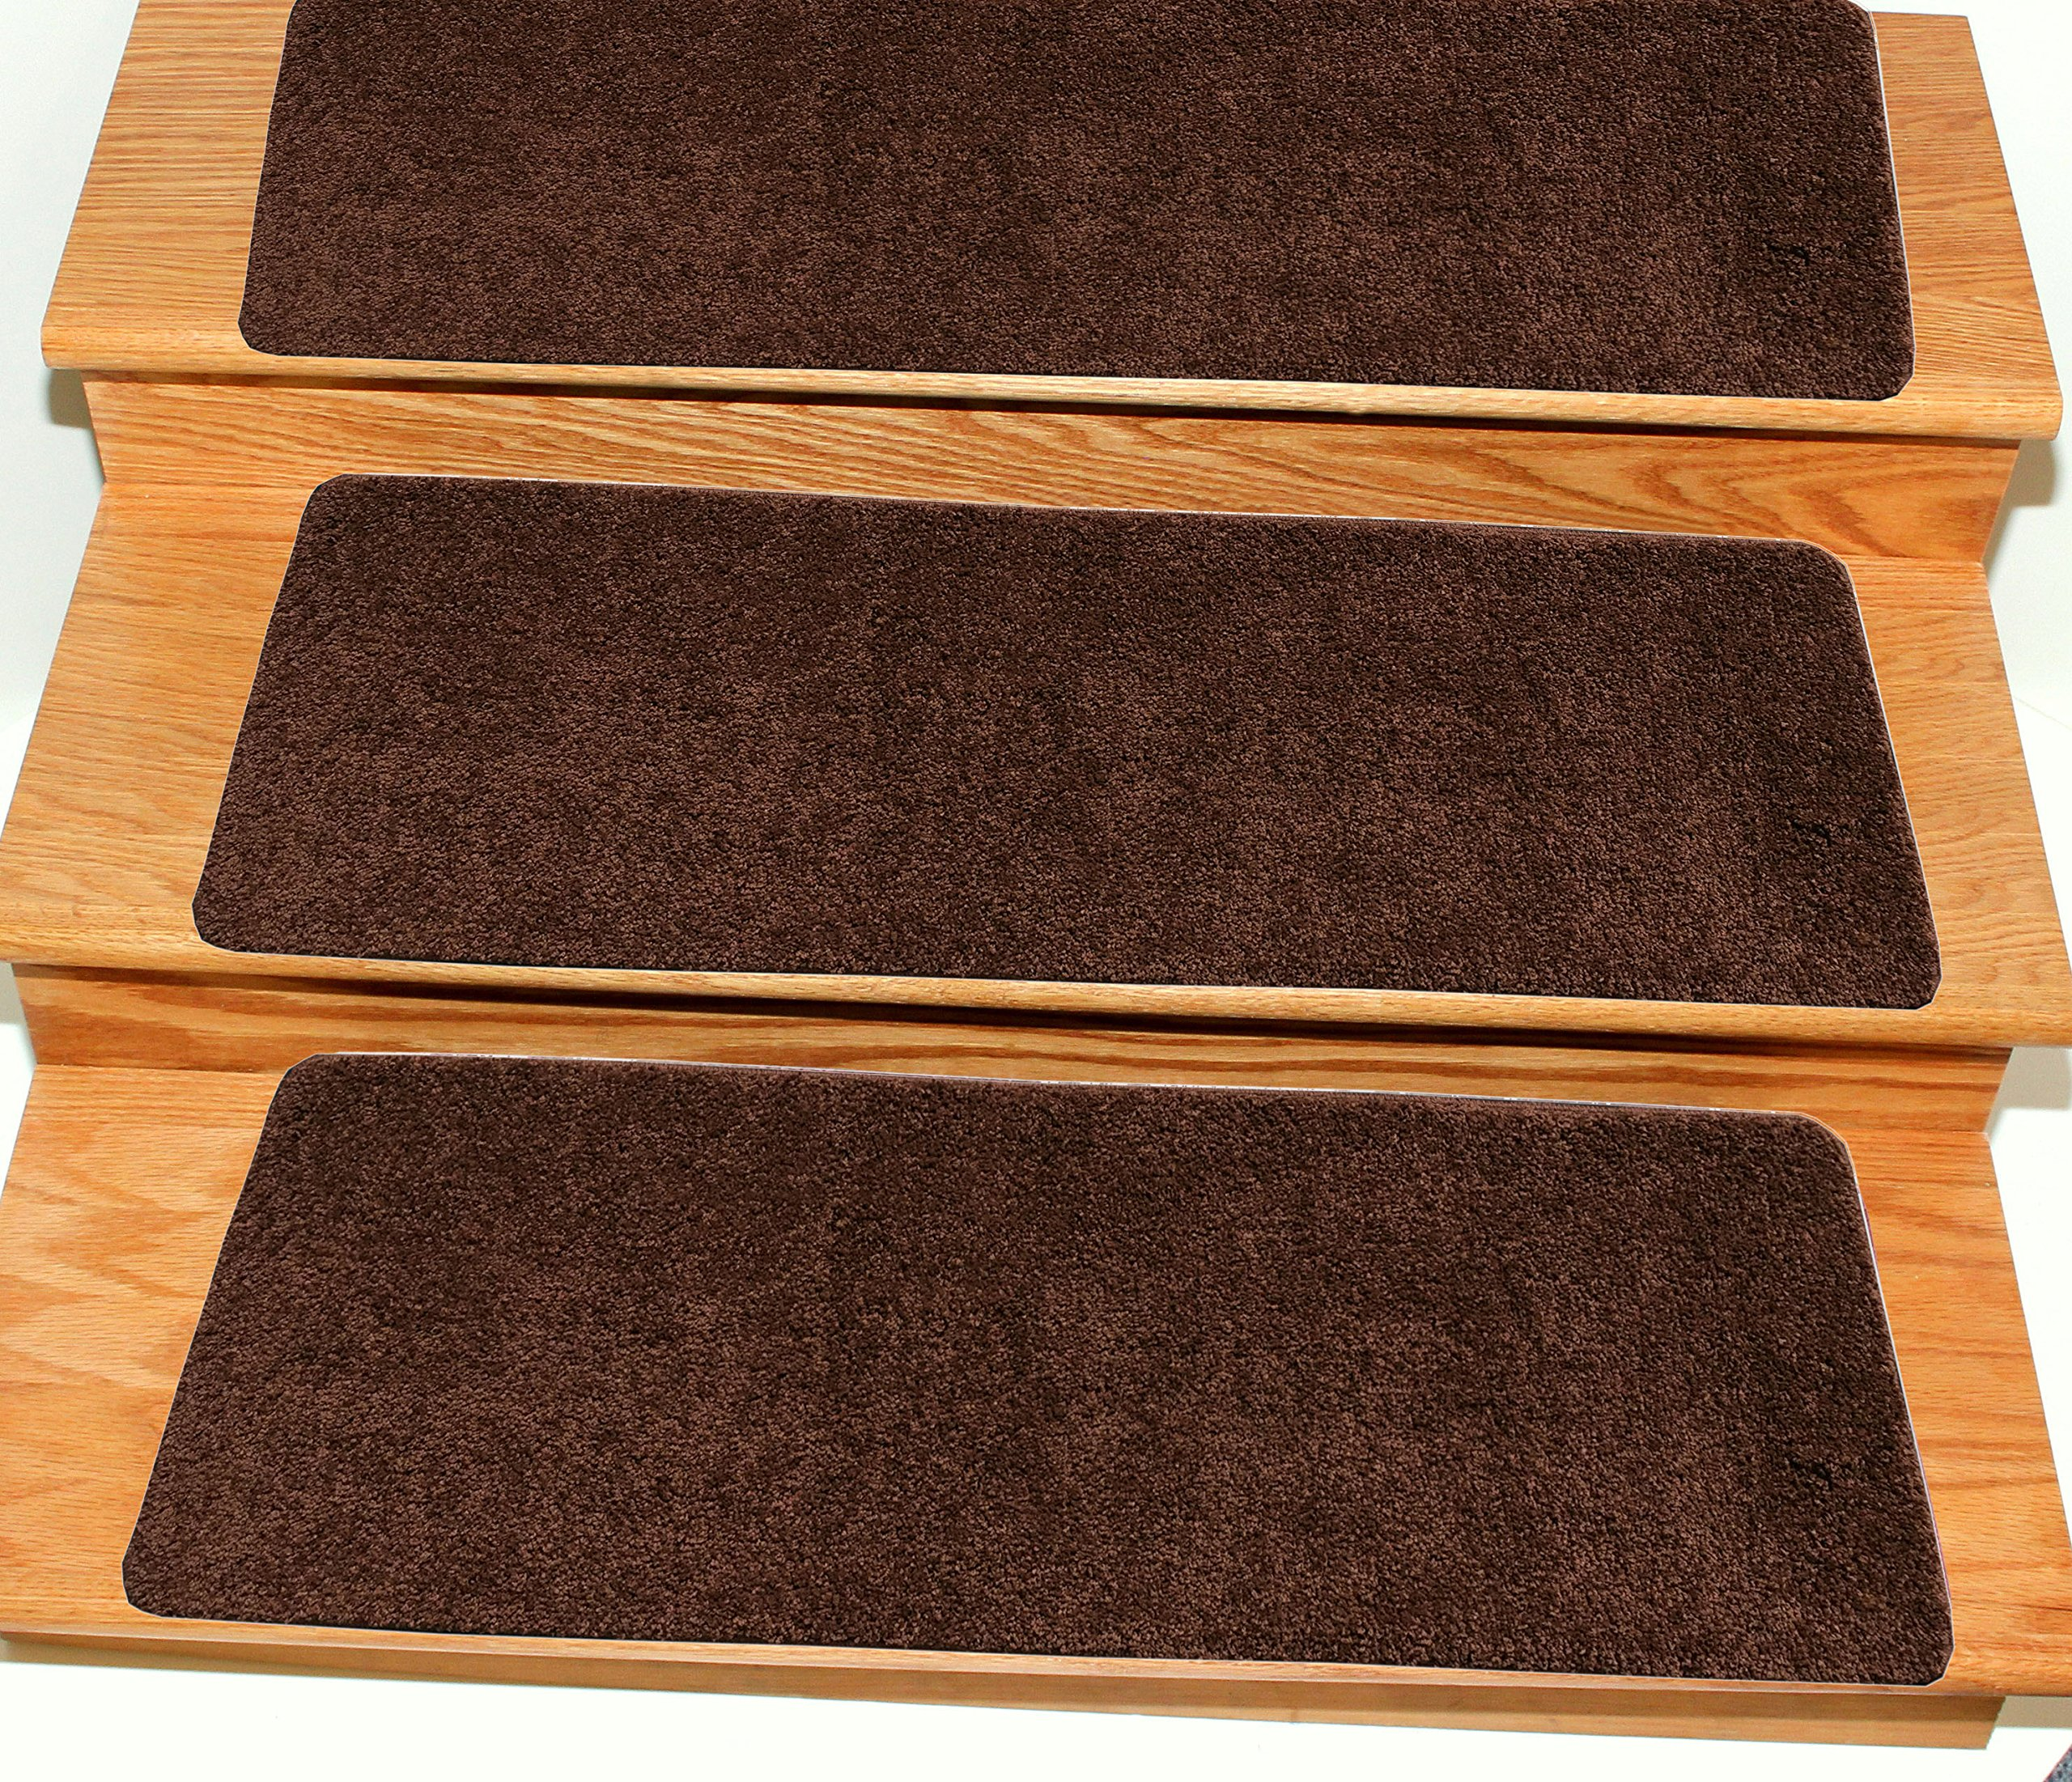 Ottomanson Comfort Collection Soft Solid (Non-Slip) Shag Carpet Stair Treads, 9'' X 26'', Brown, 5 Pack